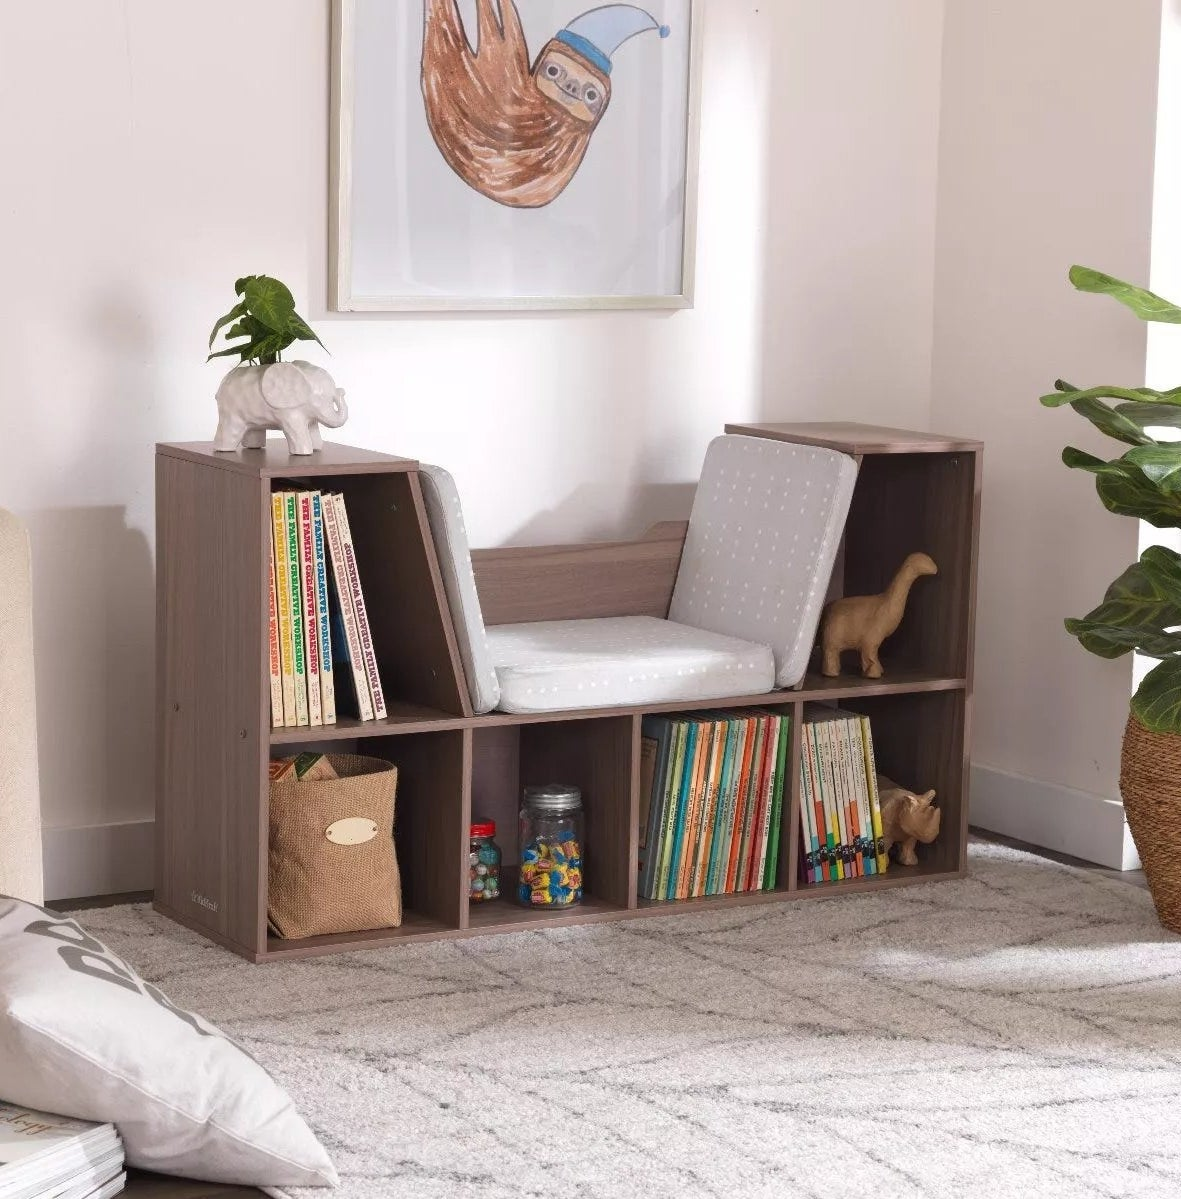 The wooden shelving unit with cushions